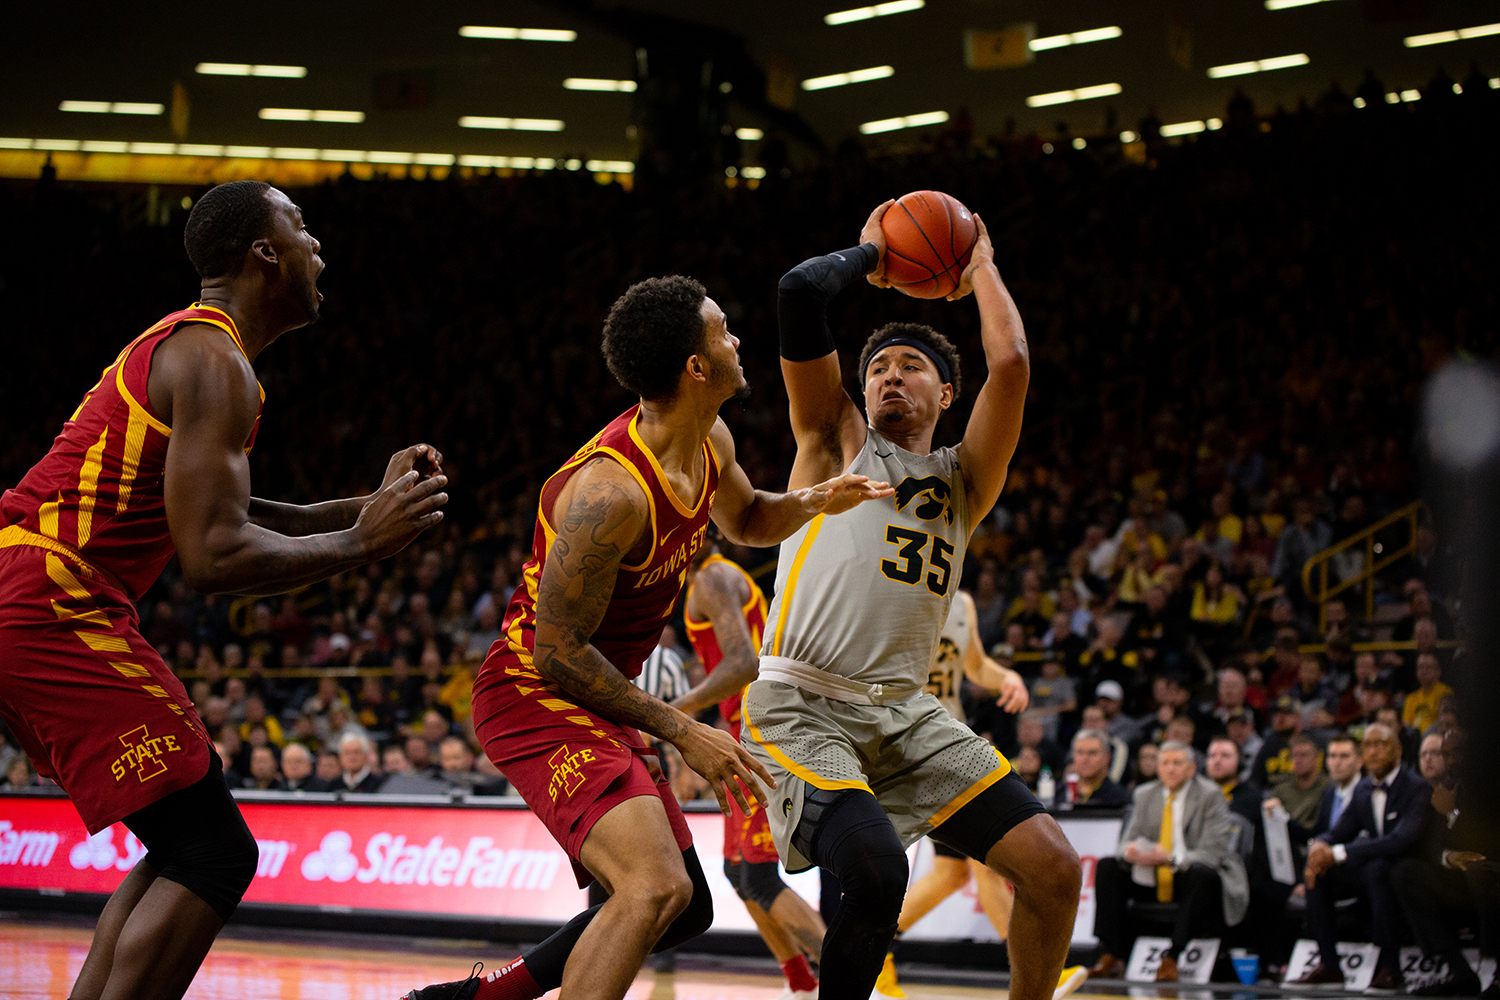 Iowa forward Cordell Pemsl looks to pass during Iowa's game against Iowa State at Carver-Hawkeye Arena on December 6, 2018. The Hawkeyes defeated the Cyclones 98-84.